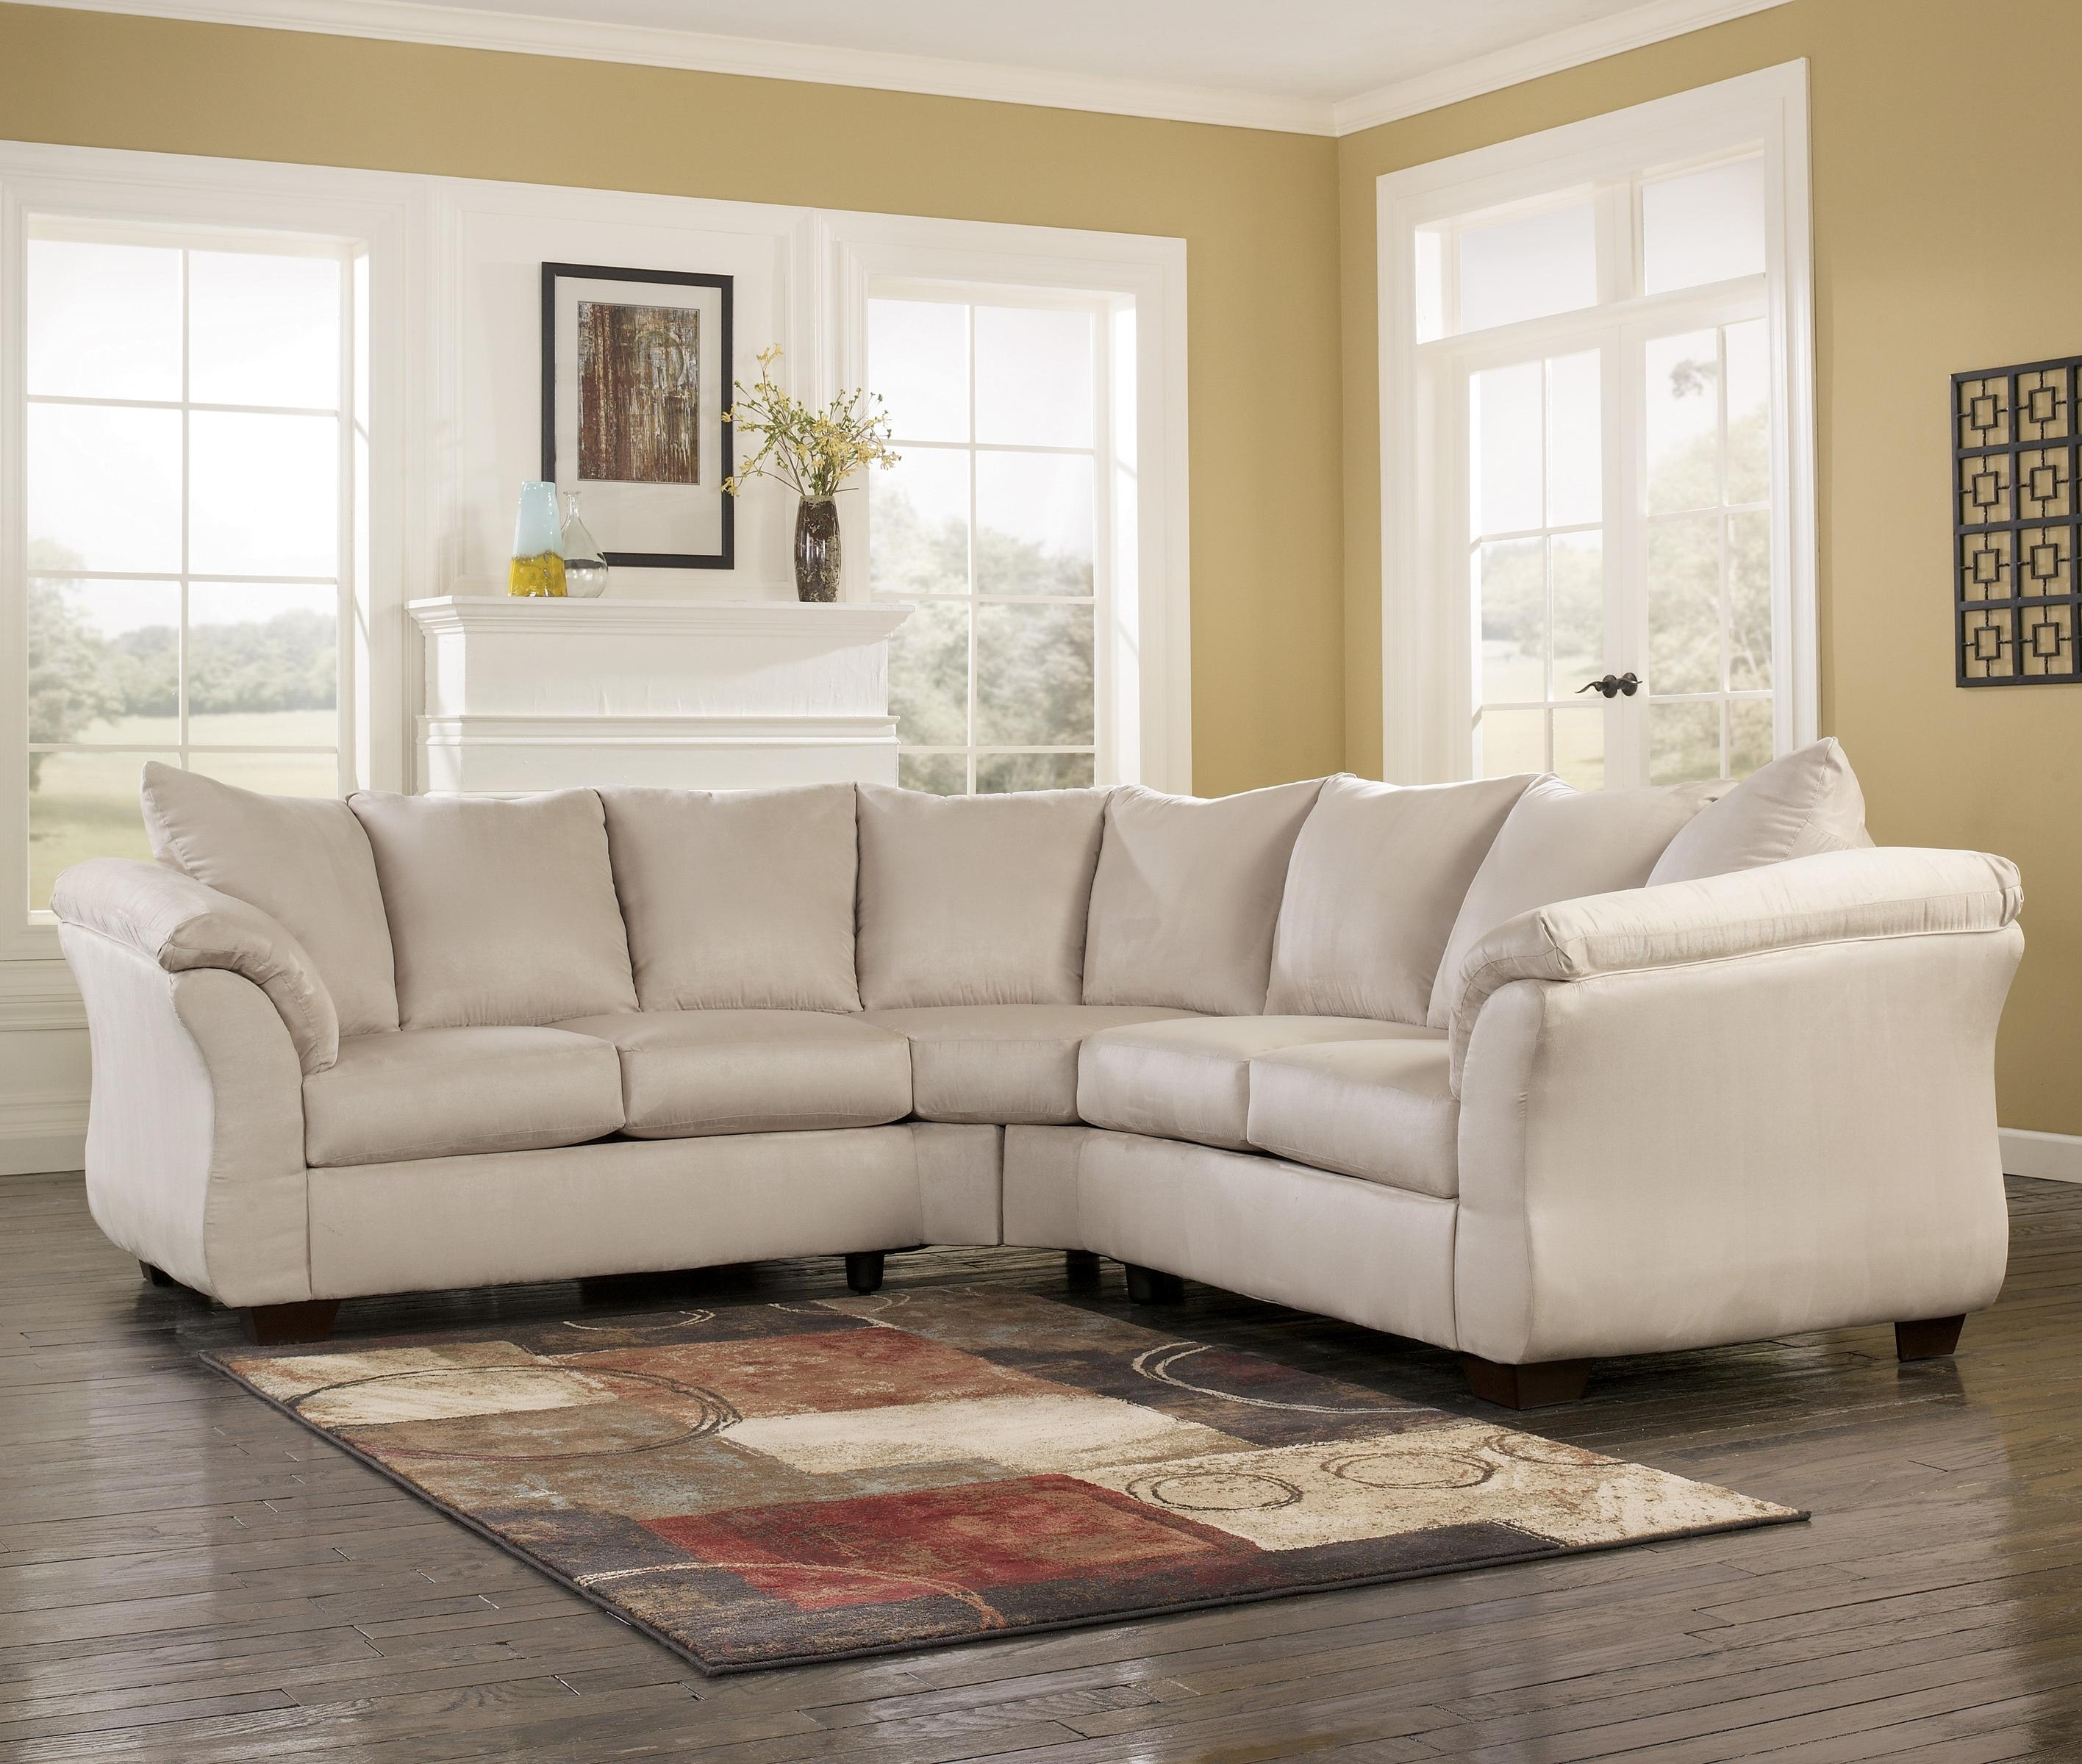 Furniture El Paso Tx – Home Design Ideas And Pictures Inside El Paso Tx Sectional Sofas (Image 6 of 10)